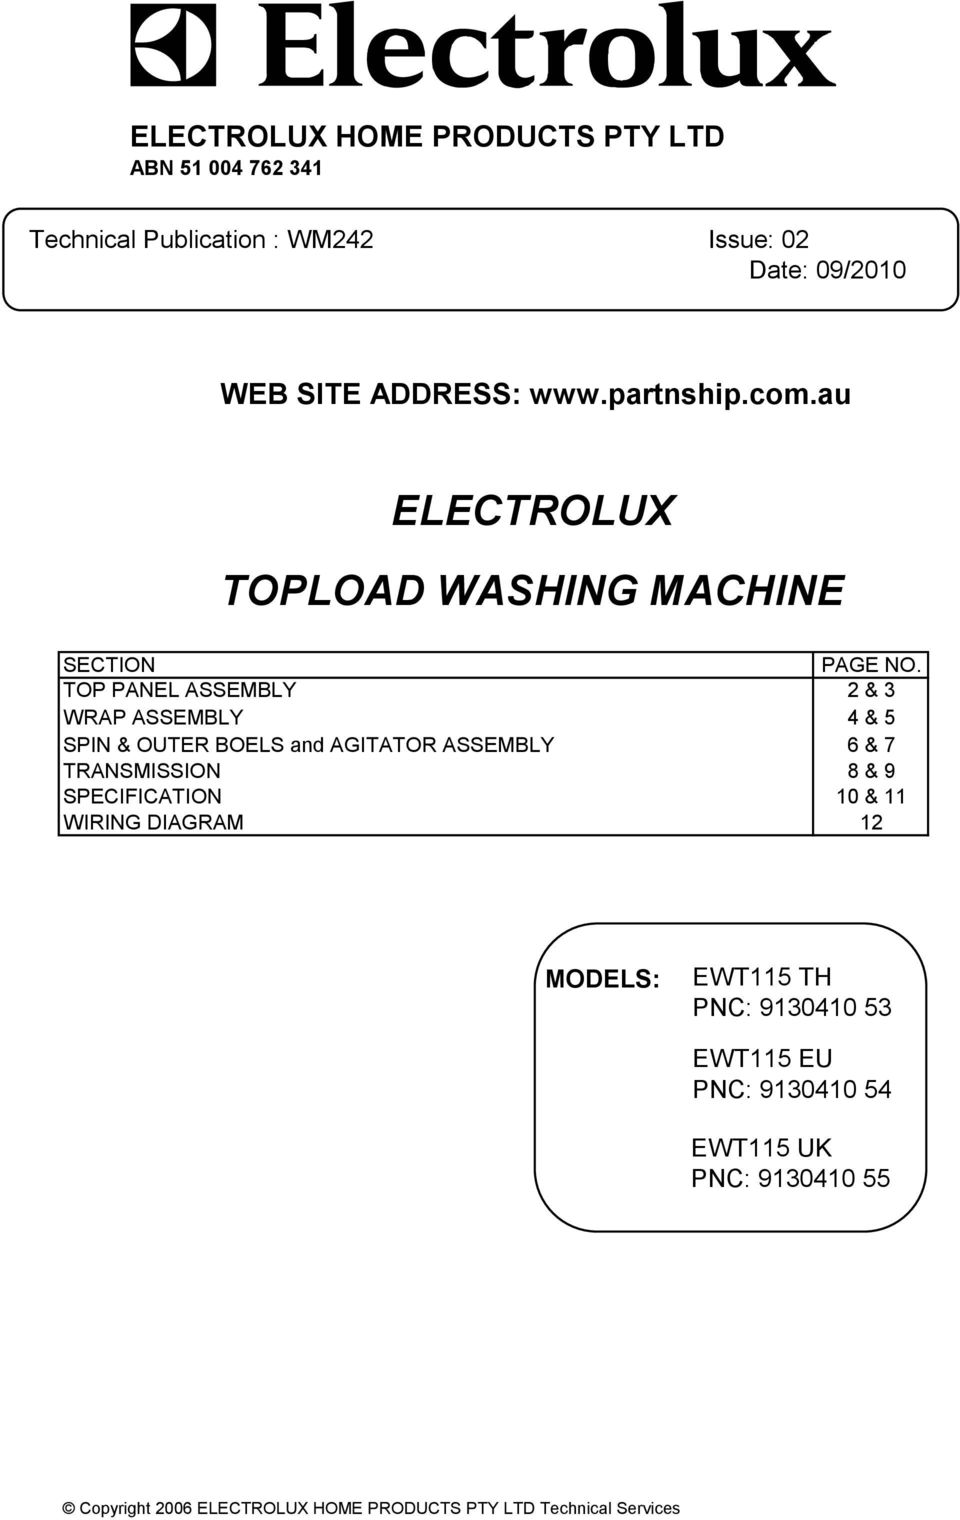 Electrolux Topload Washing Machine Pdf Spin Dryer Wiring Diagram Top Panel Assembly 2 3 Wrap 4 5 Outer Boels And